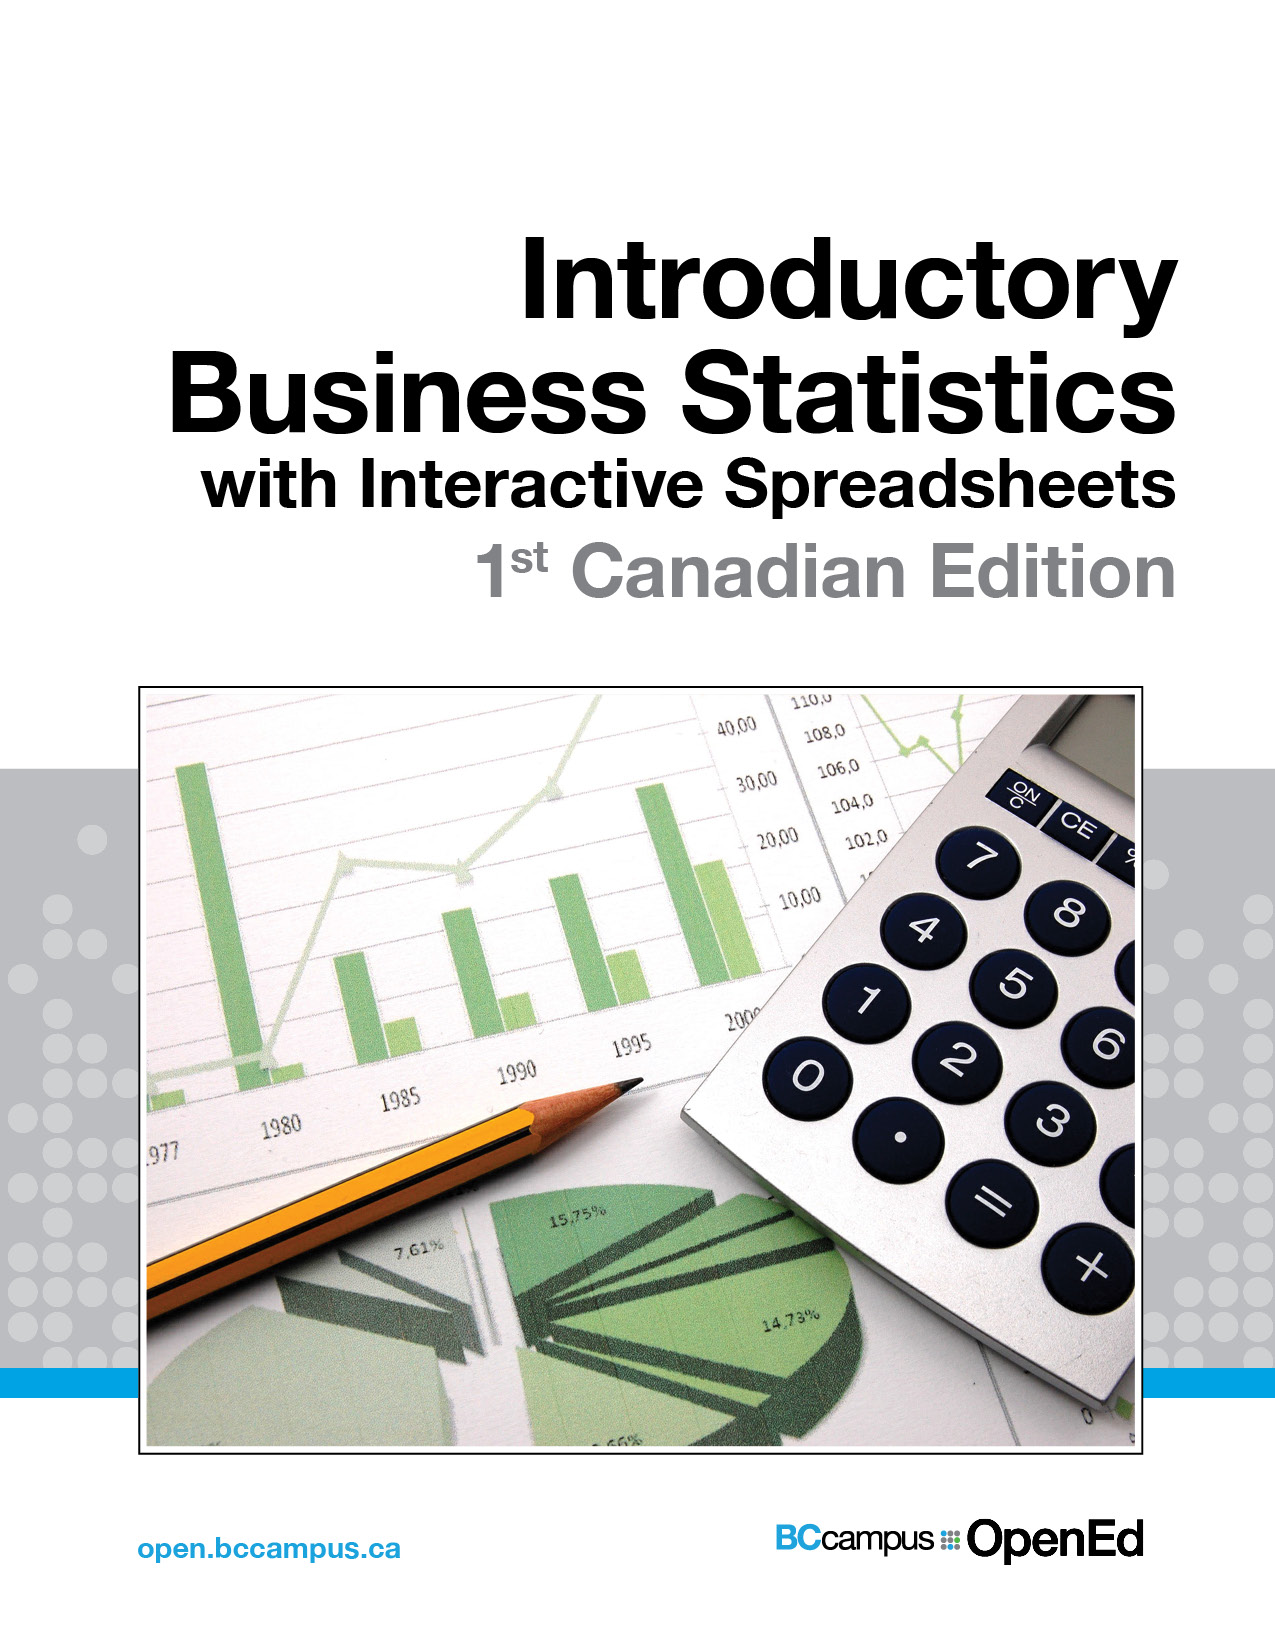 Cover image for Introductory Business Statistics with Interactive Spreadsheets - 1st Canadian Edition